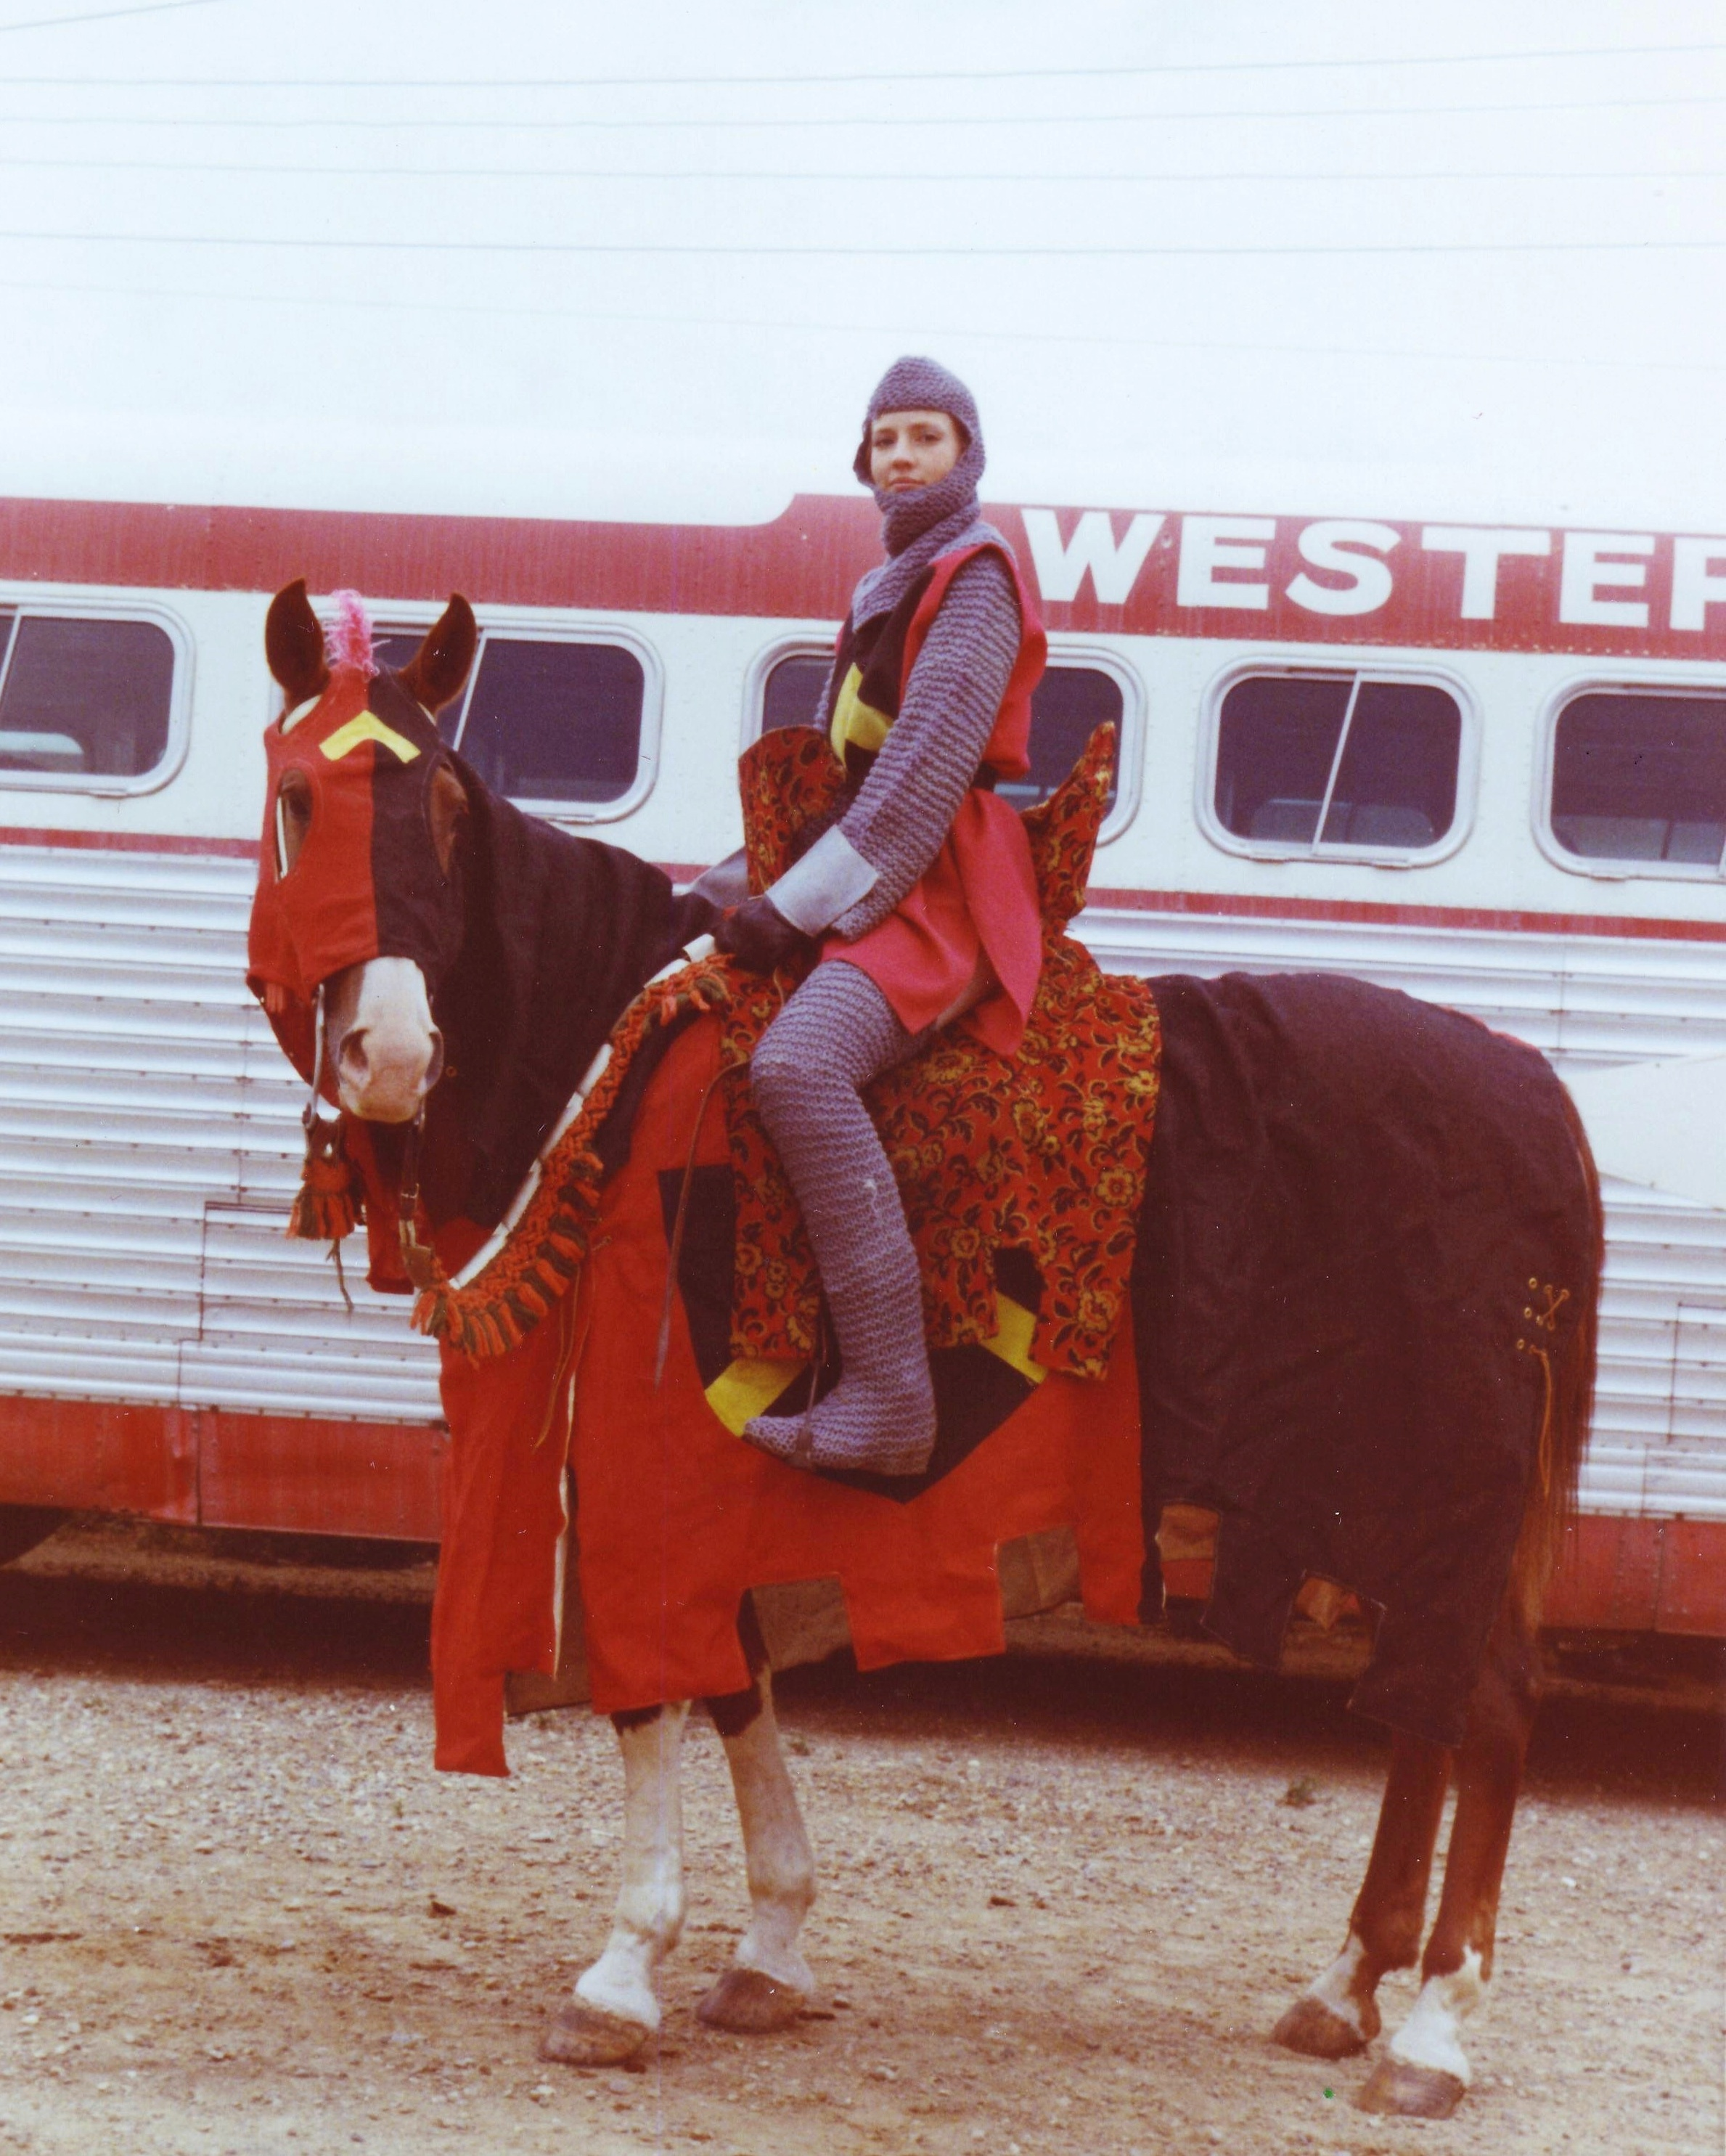 Westernaire rider Cheryl Andre and her horse, Blaze, in full  Camelot  tack and regalia